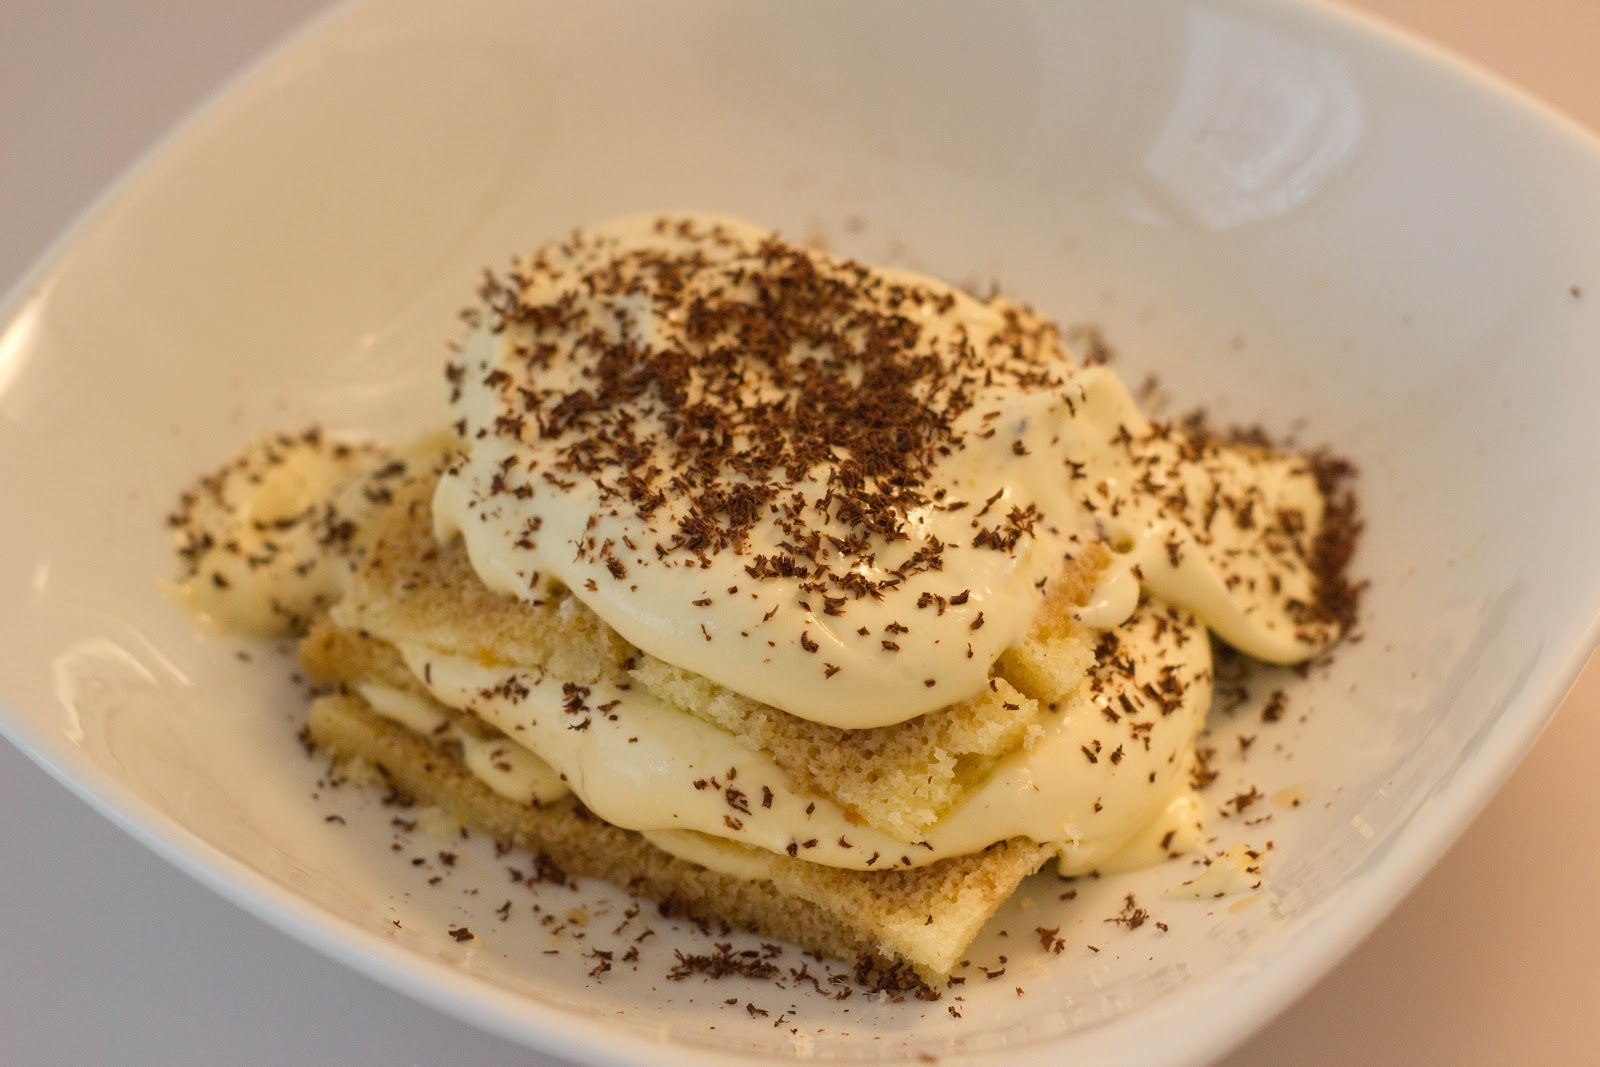 A scientists love affair with food tiramisu cake how did i do with my first surely will not be my last try my food tasters used the following words to do describe it light not too sweet forumfinder Choice Image